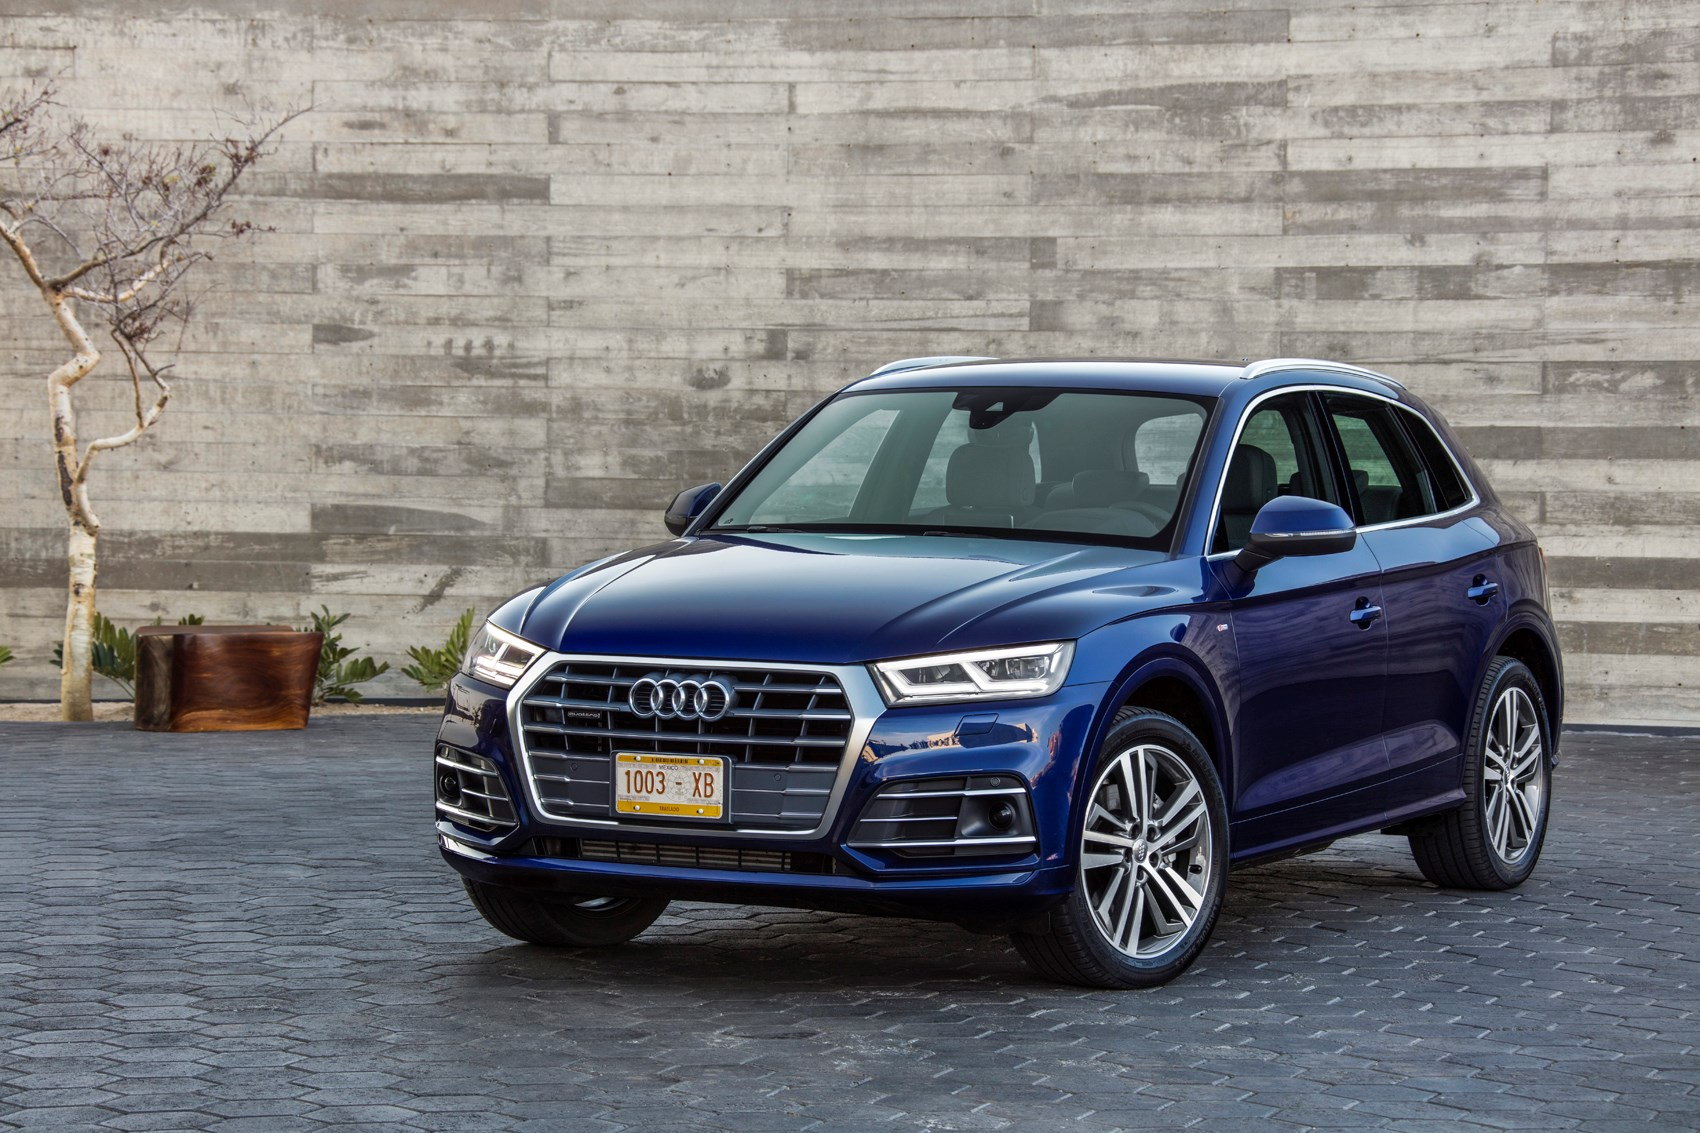 audi q5 review running costs parkers. Black Bedroom Furniture Sets. Home Design Ideas